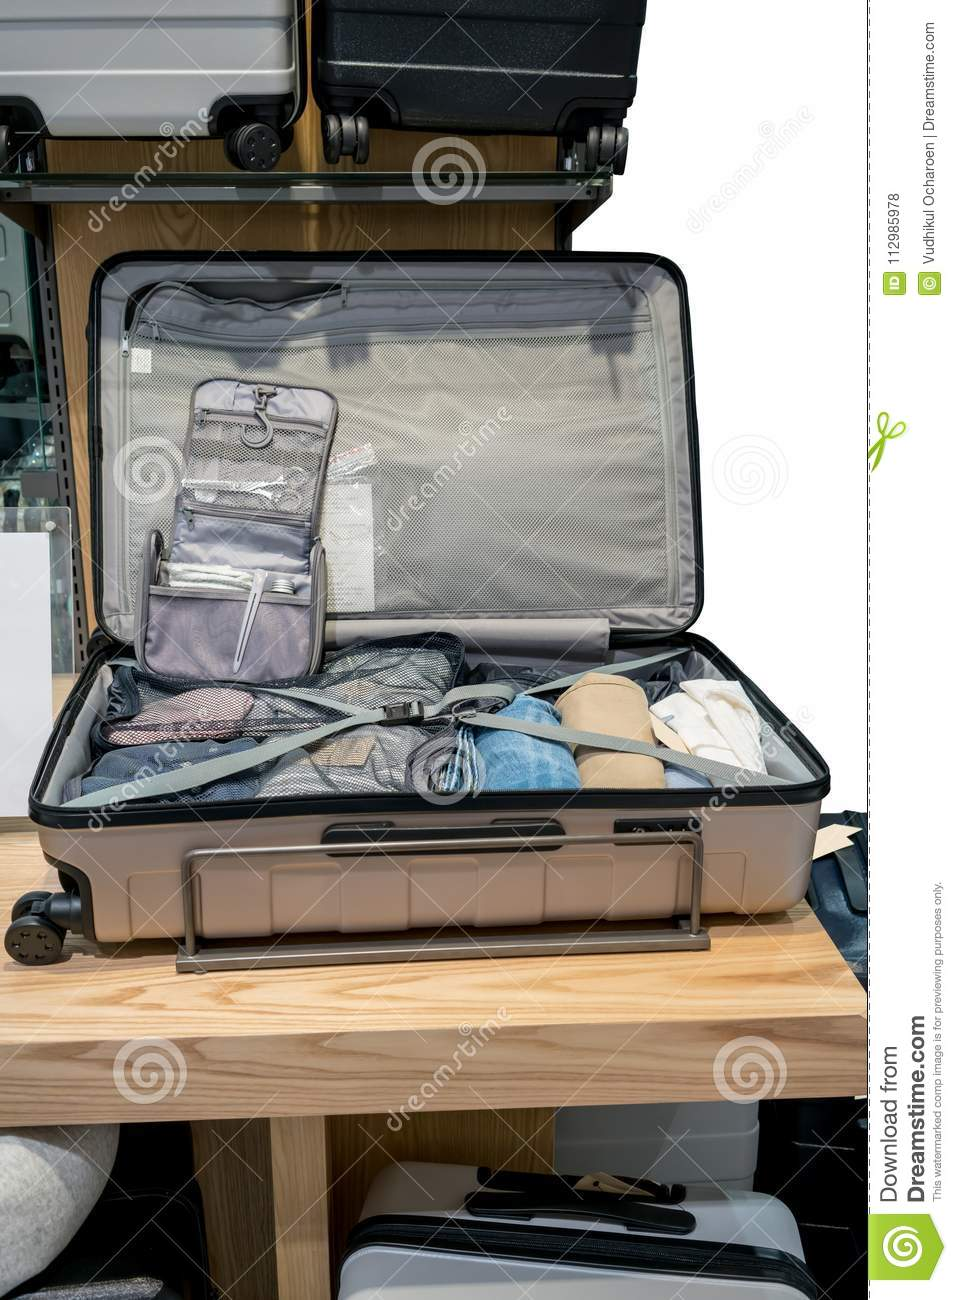 Travel smart packing in luggage on wooden table. Professional suitcase organization